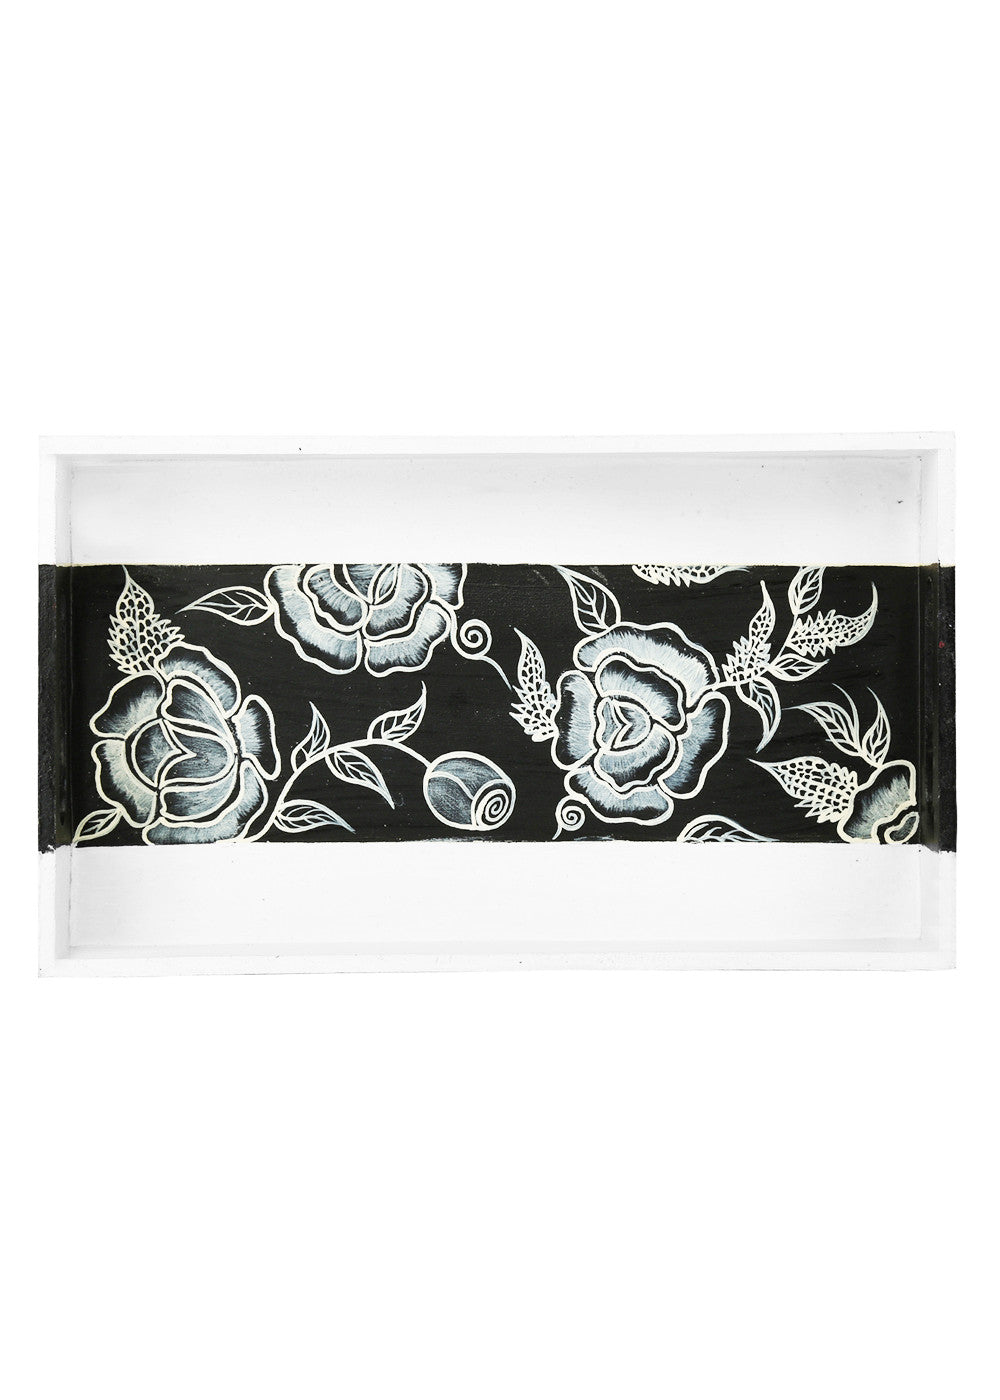 Hand-painted Florets Classy Tray - RANGRAGE